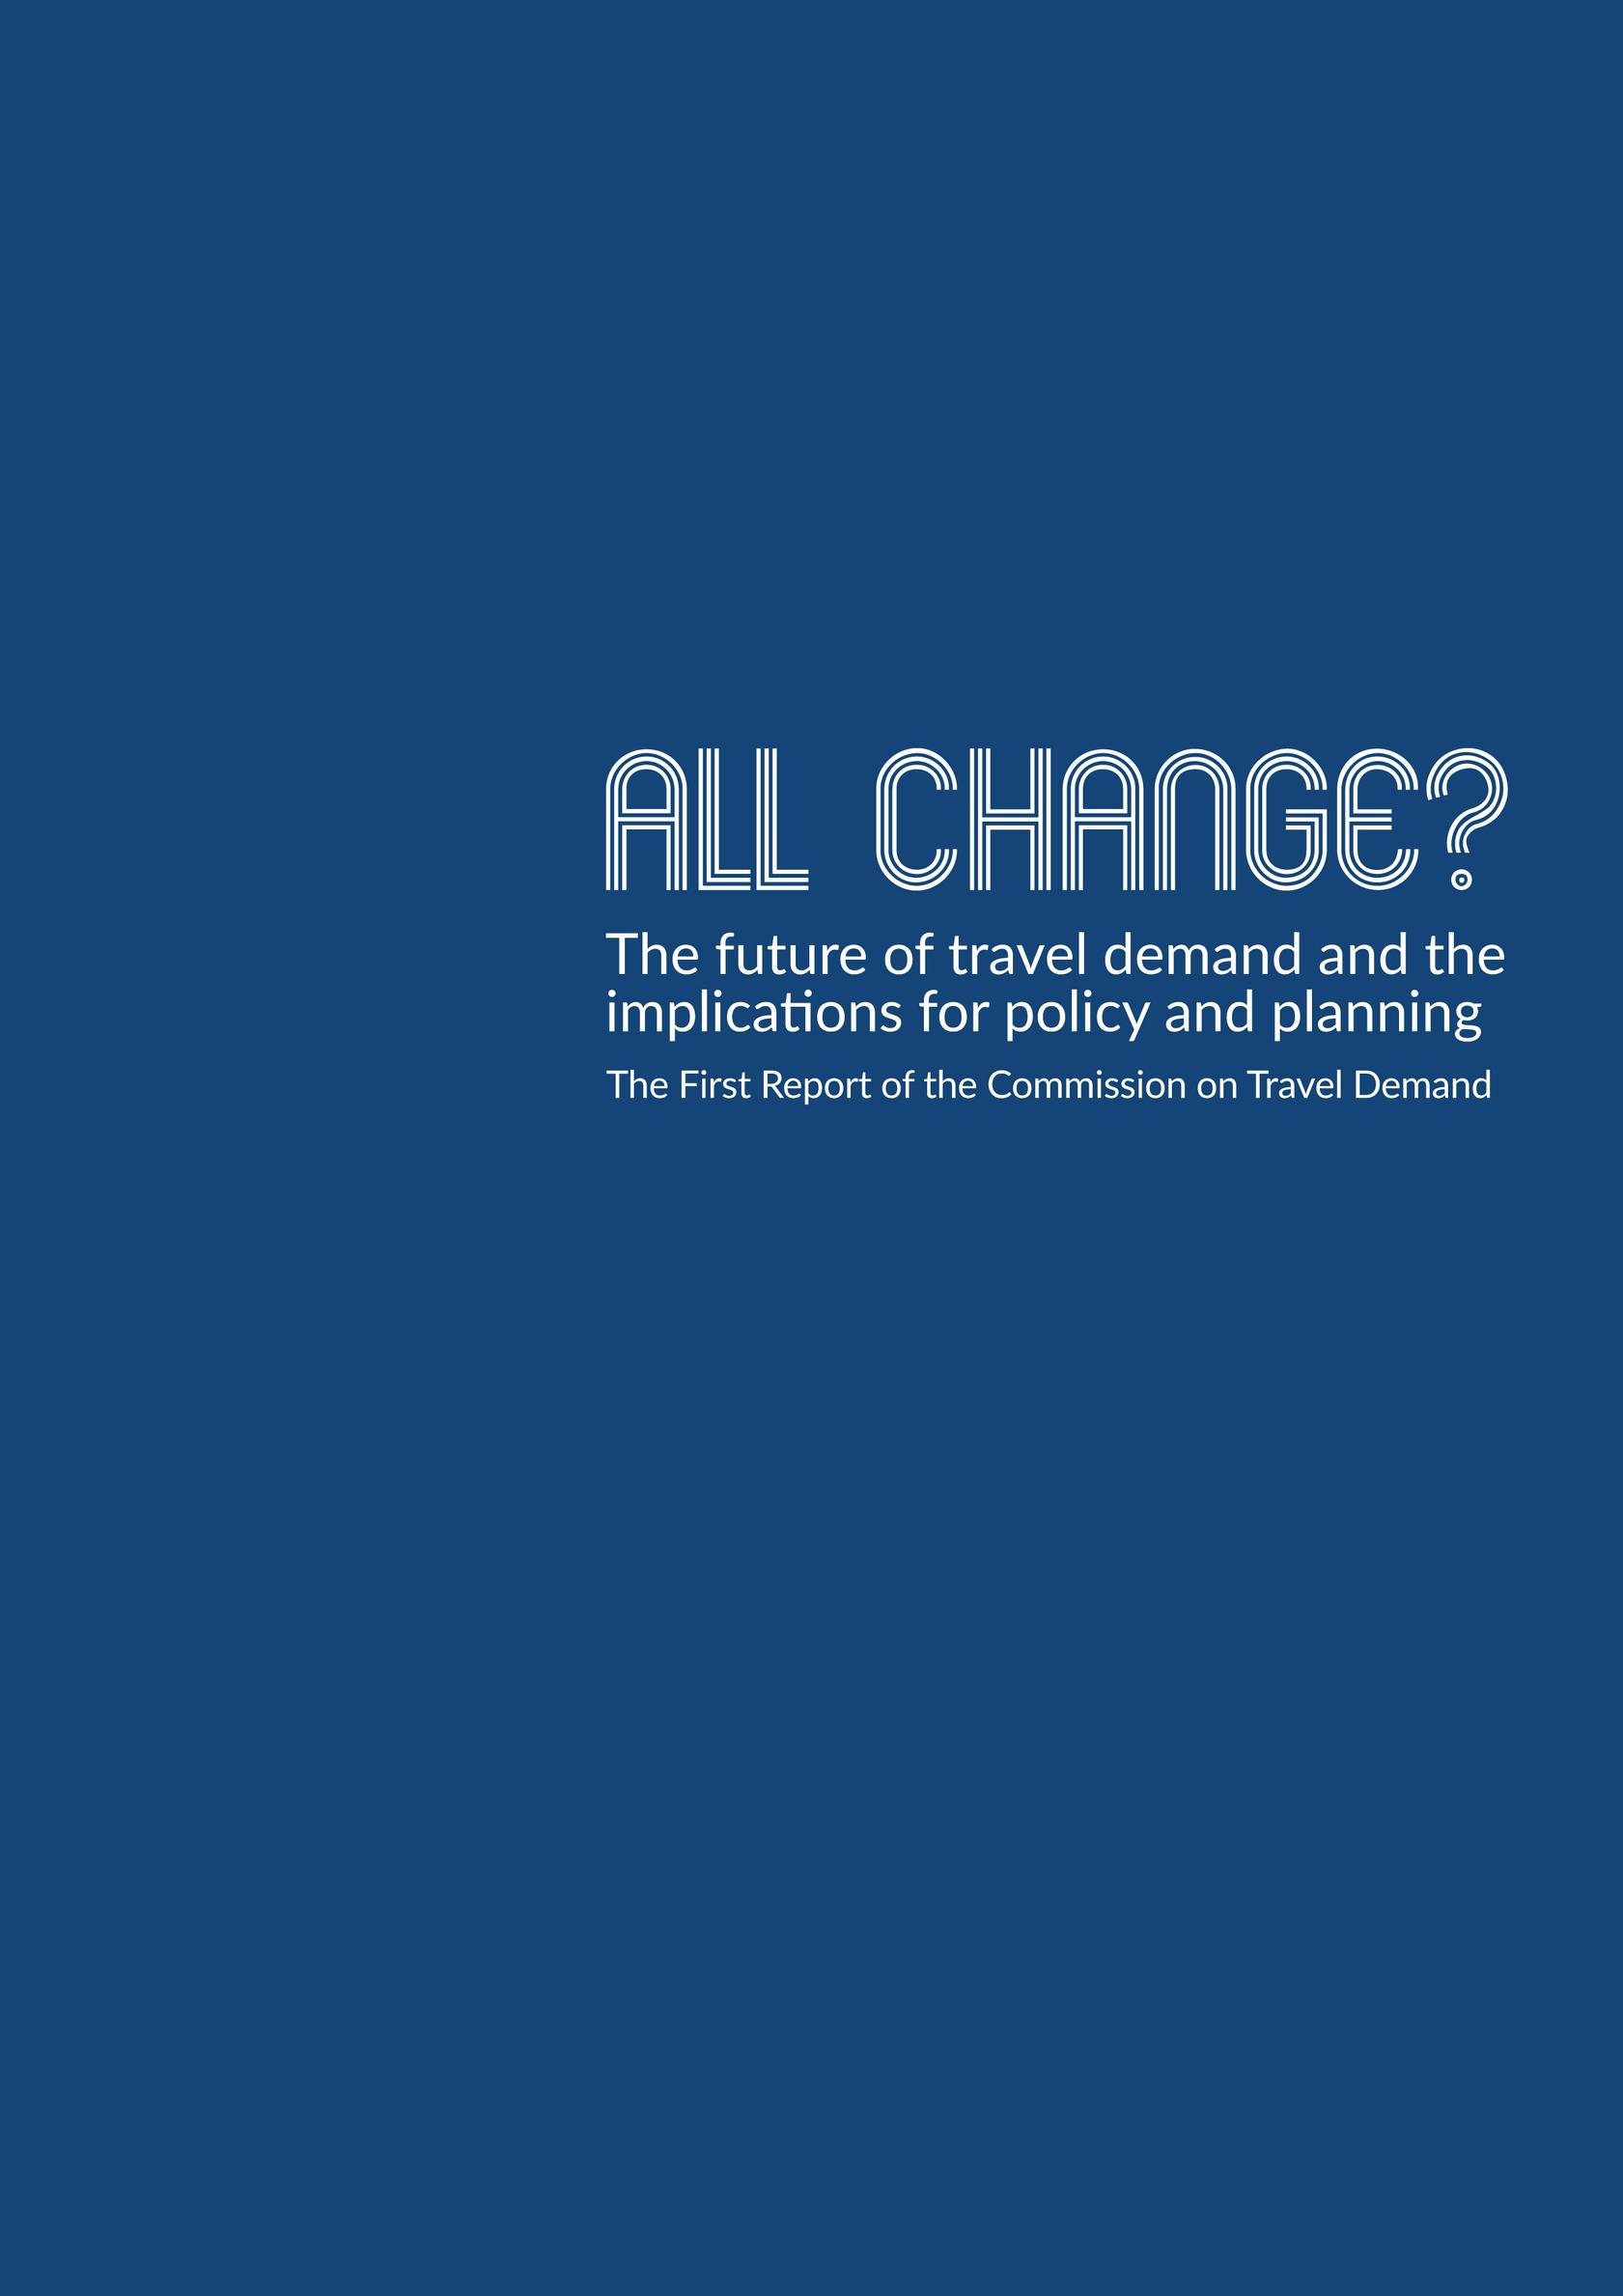 The report is available to download from: http://www.demand.ac.uk/commission-on-travel-demand/